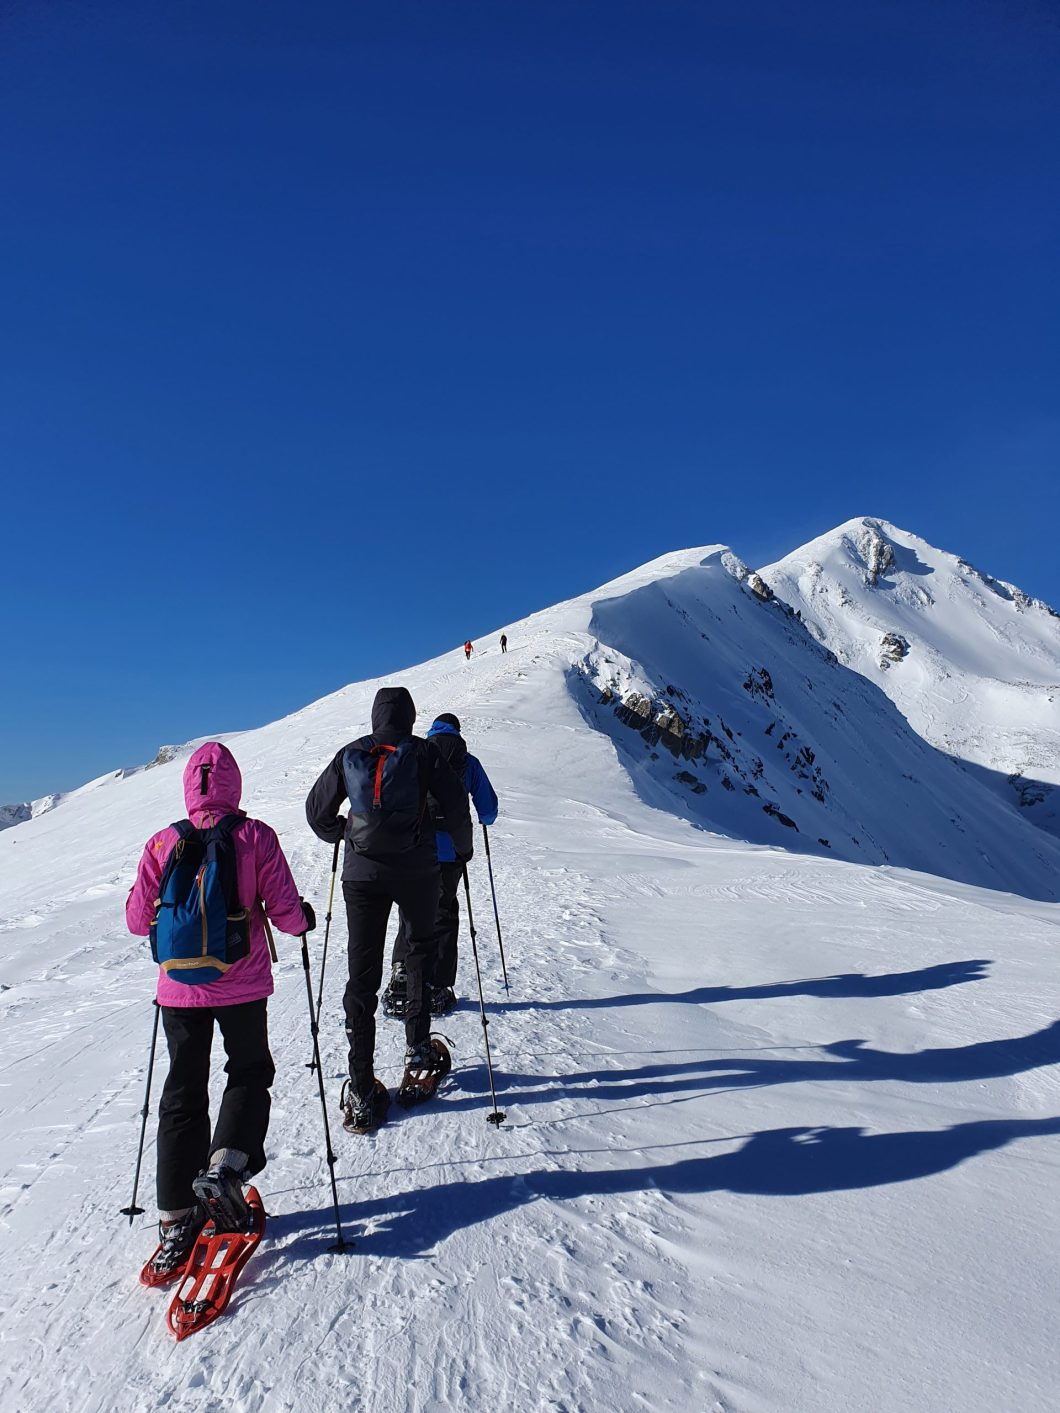 Winter Hiking in Bulgaria: Snowshoeing experience in Pirin mountain